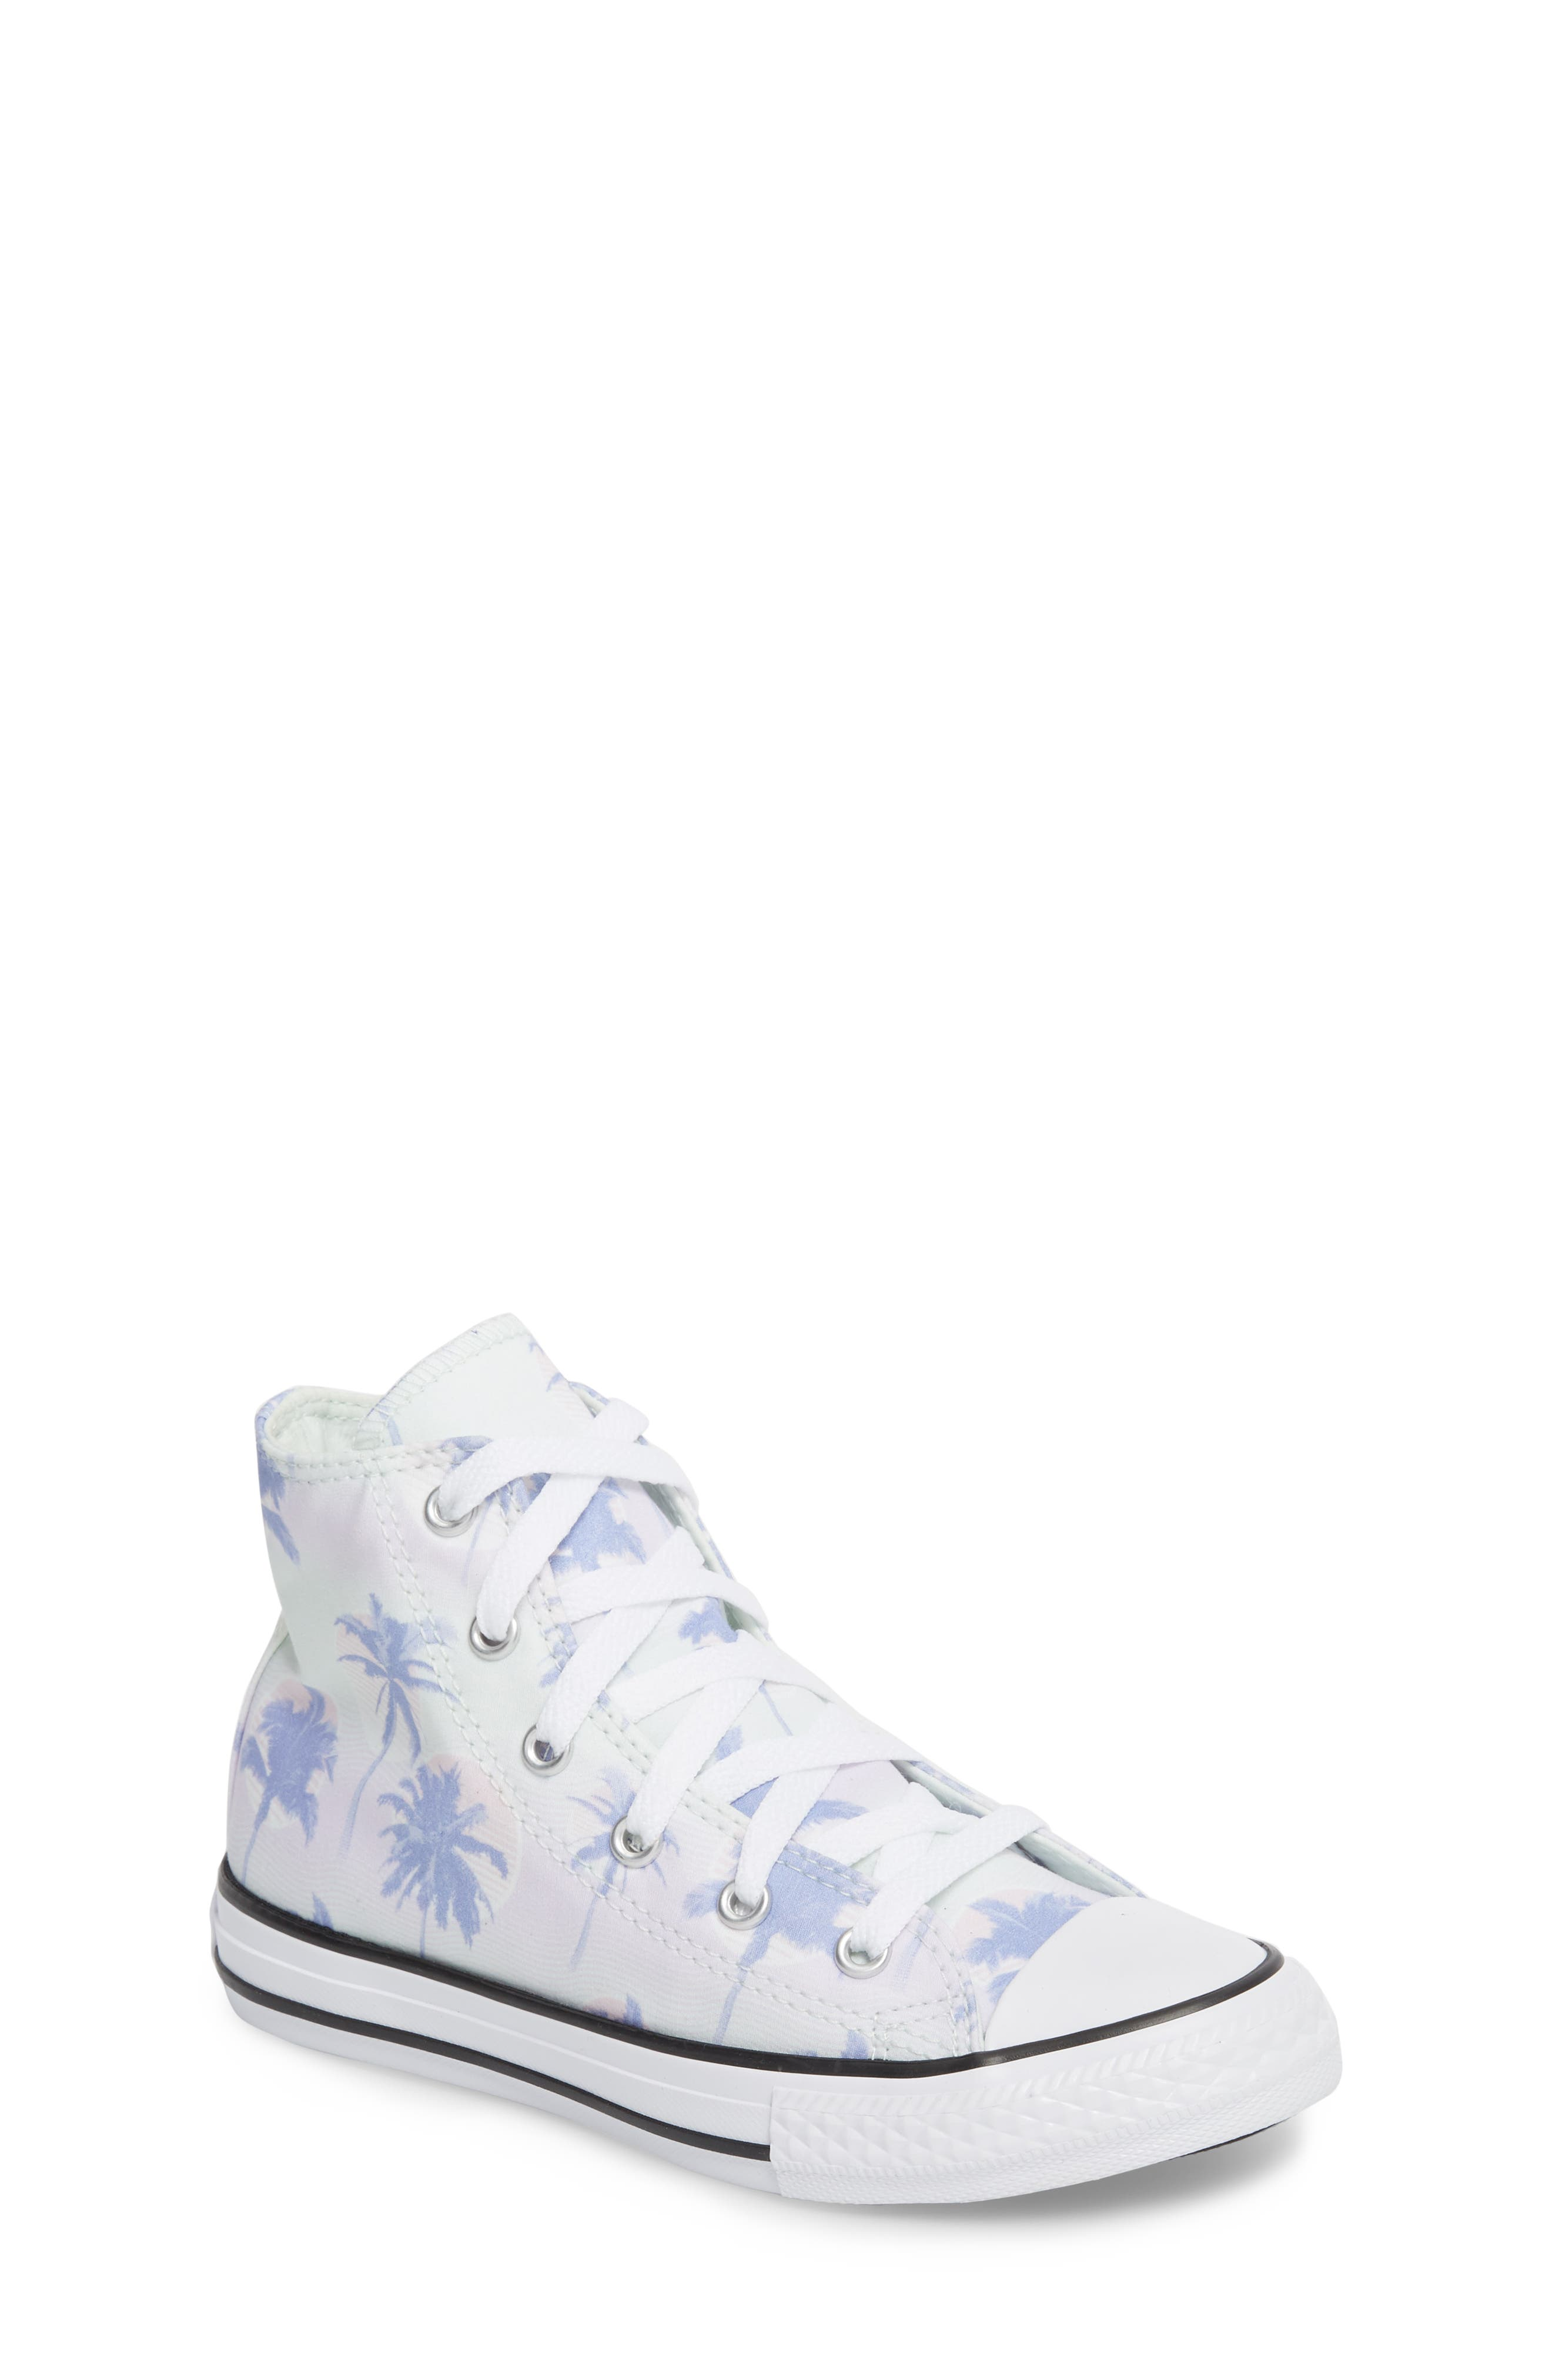 Chuck Taylor<sup>®</sup> All Star<sup>®</sup> Palm Tree High Top Sneaker,                         Main,                         color, Purple